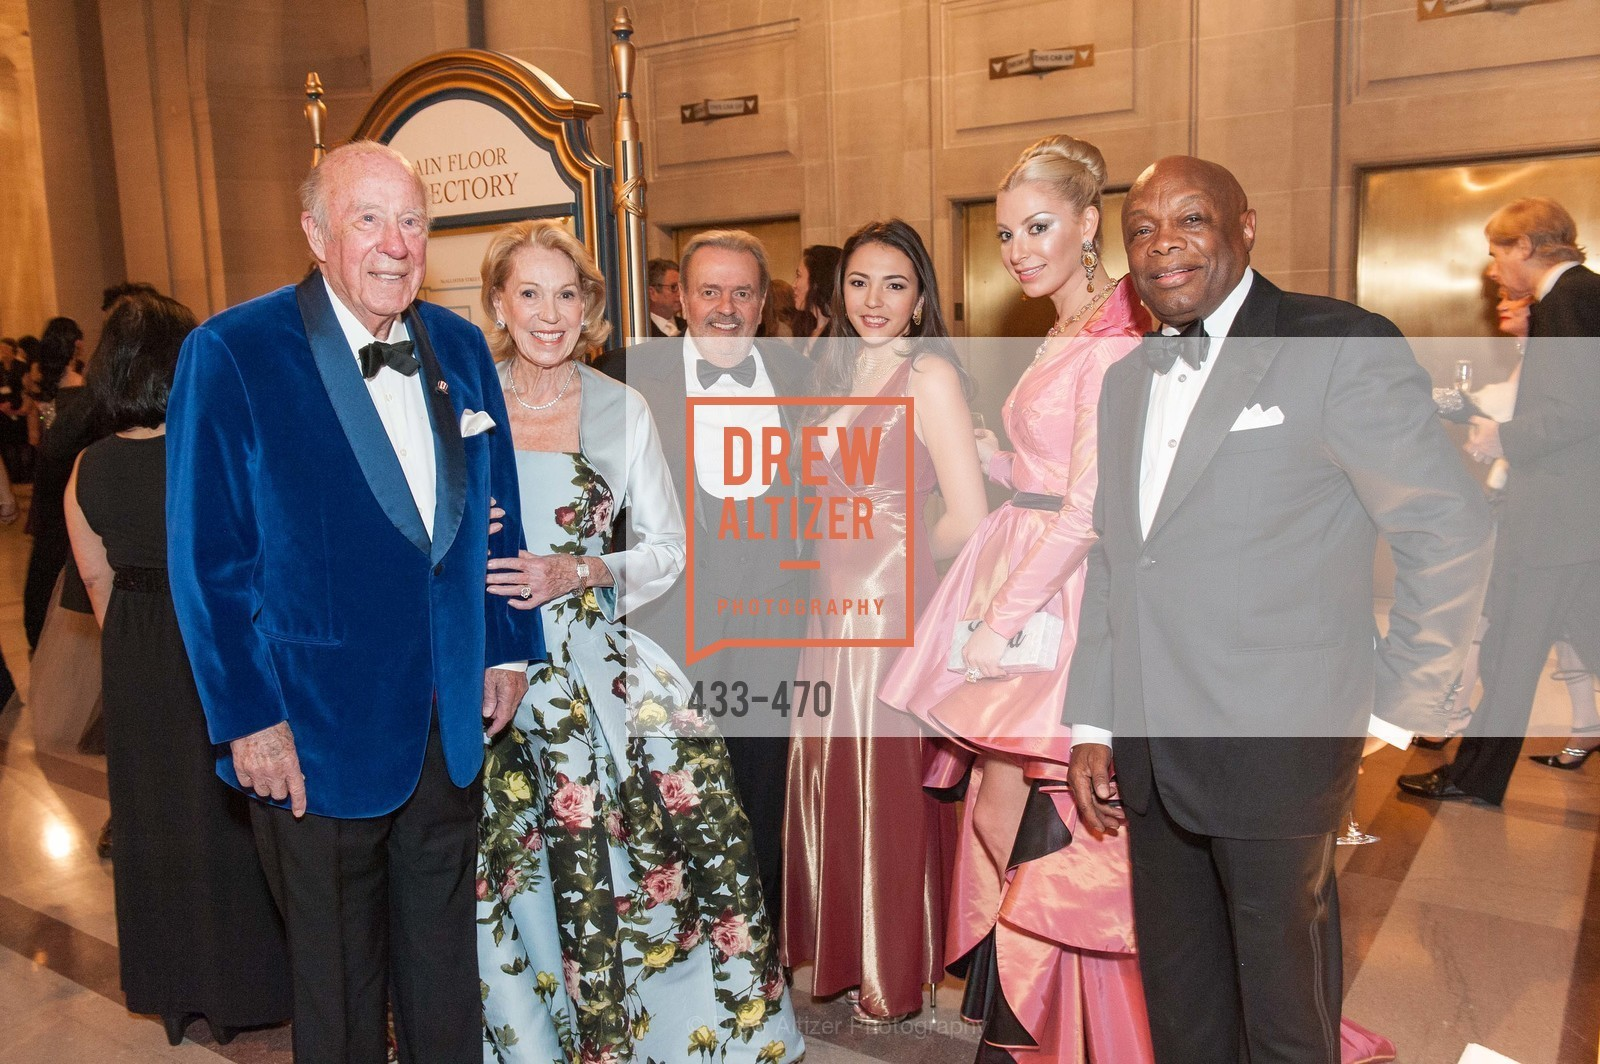 George Shultz, Charlotte Shultz, Sonya Molodetskaya, Willie Brown, SAN FRANCISCO BALLET Opening Night Gala: PHENOMENAL - Arrivals, US. SF City Hall, January 22nd, 2014,Drew Altizer, Drew Altizer Photography, full-service event agency, private events, San Francisco photographer, photographer California